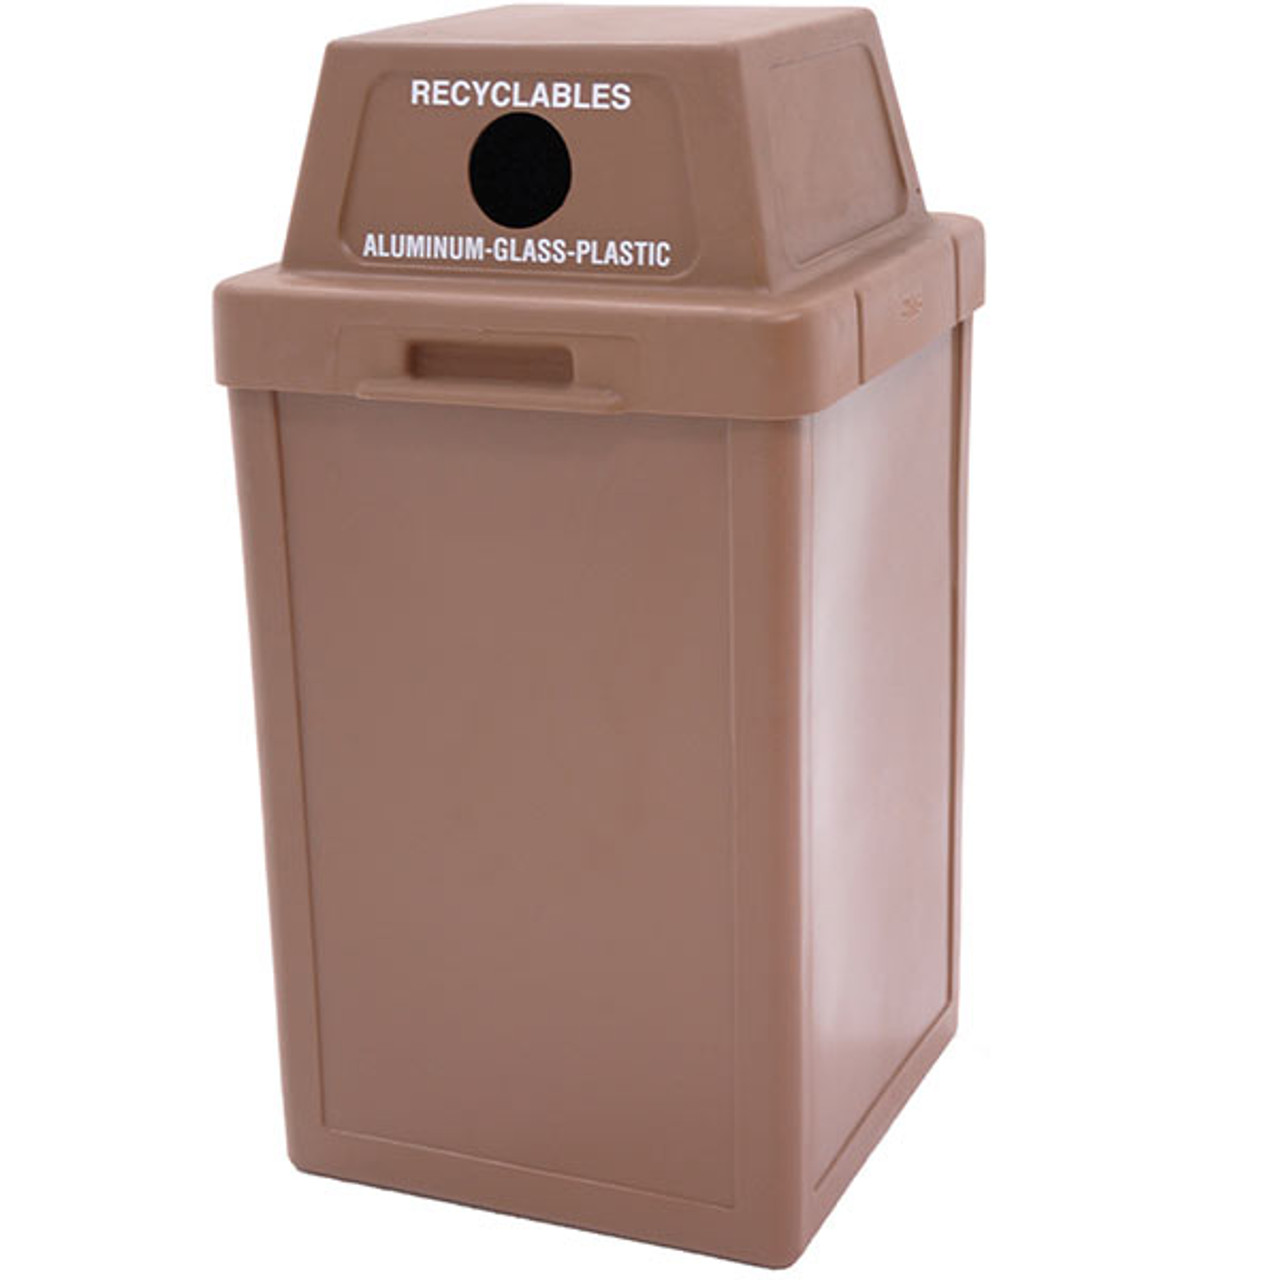 24 Gallon Plastic Indoor Outdoor Recycling Waste Container TF1001